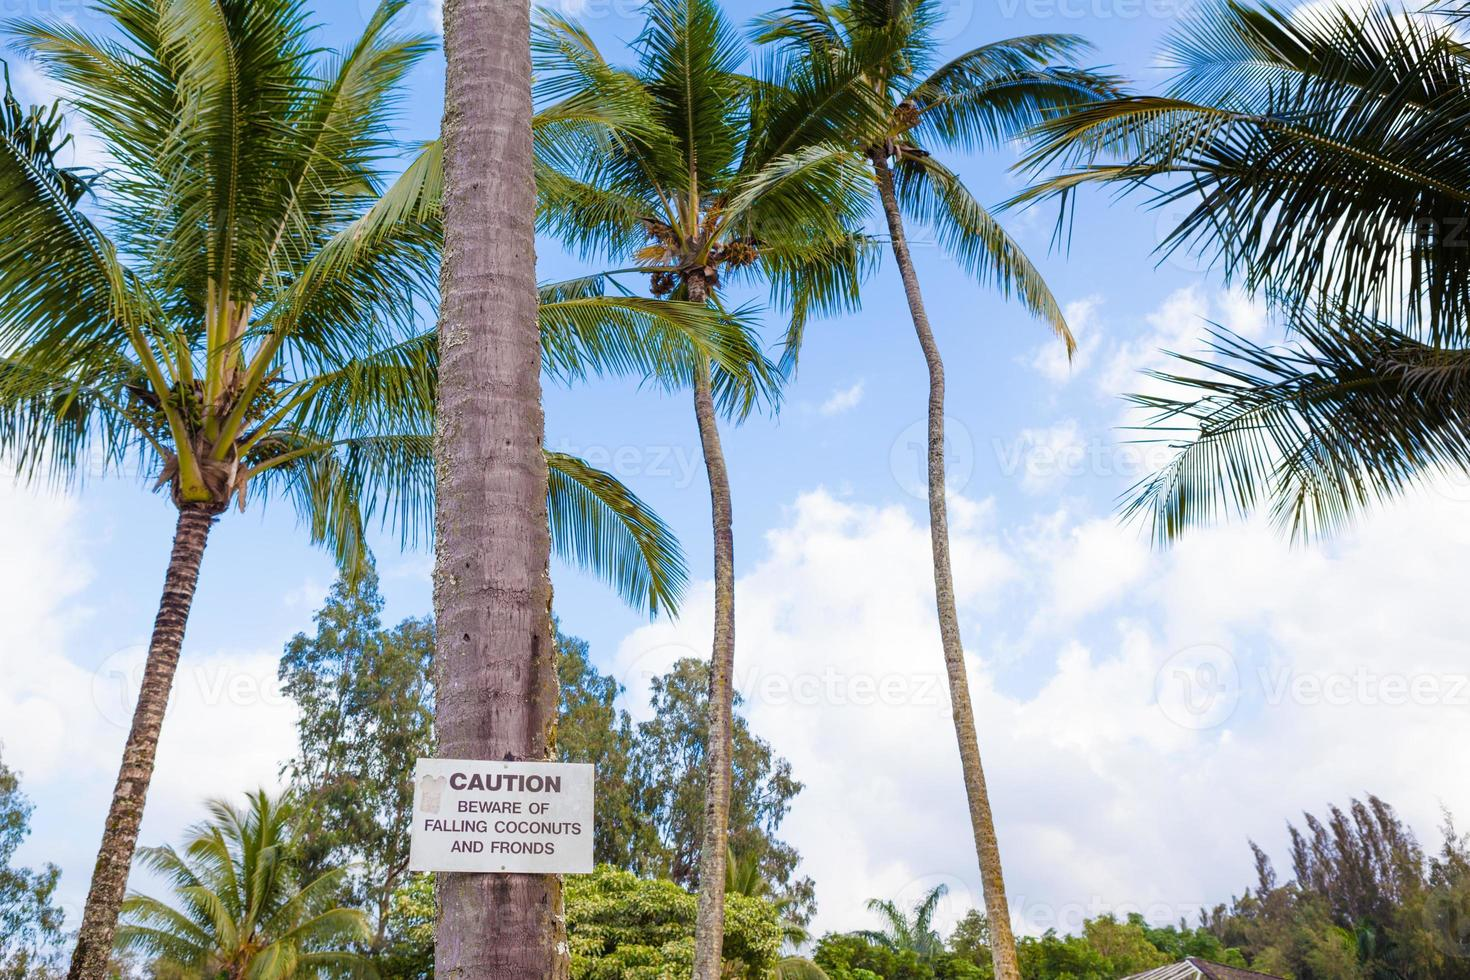 Beware of falling coconuts sign photo